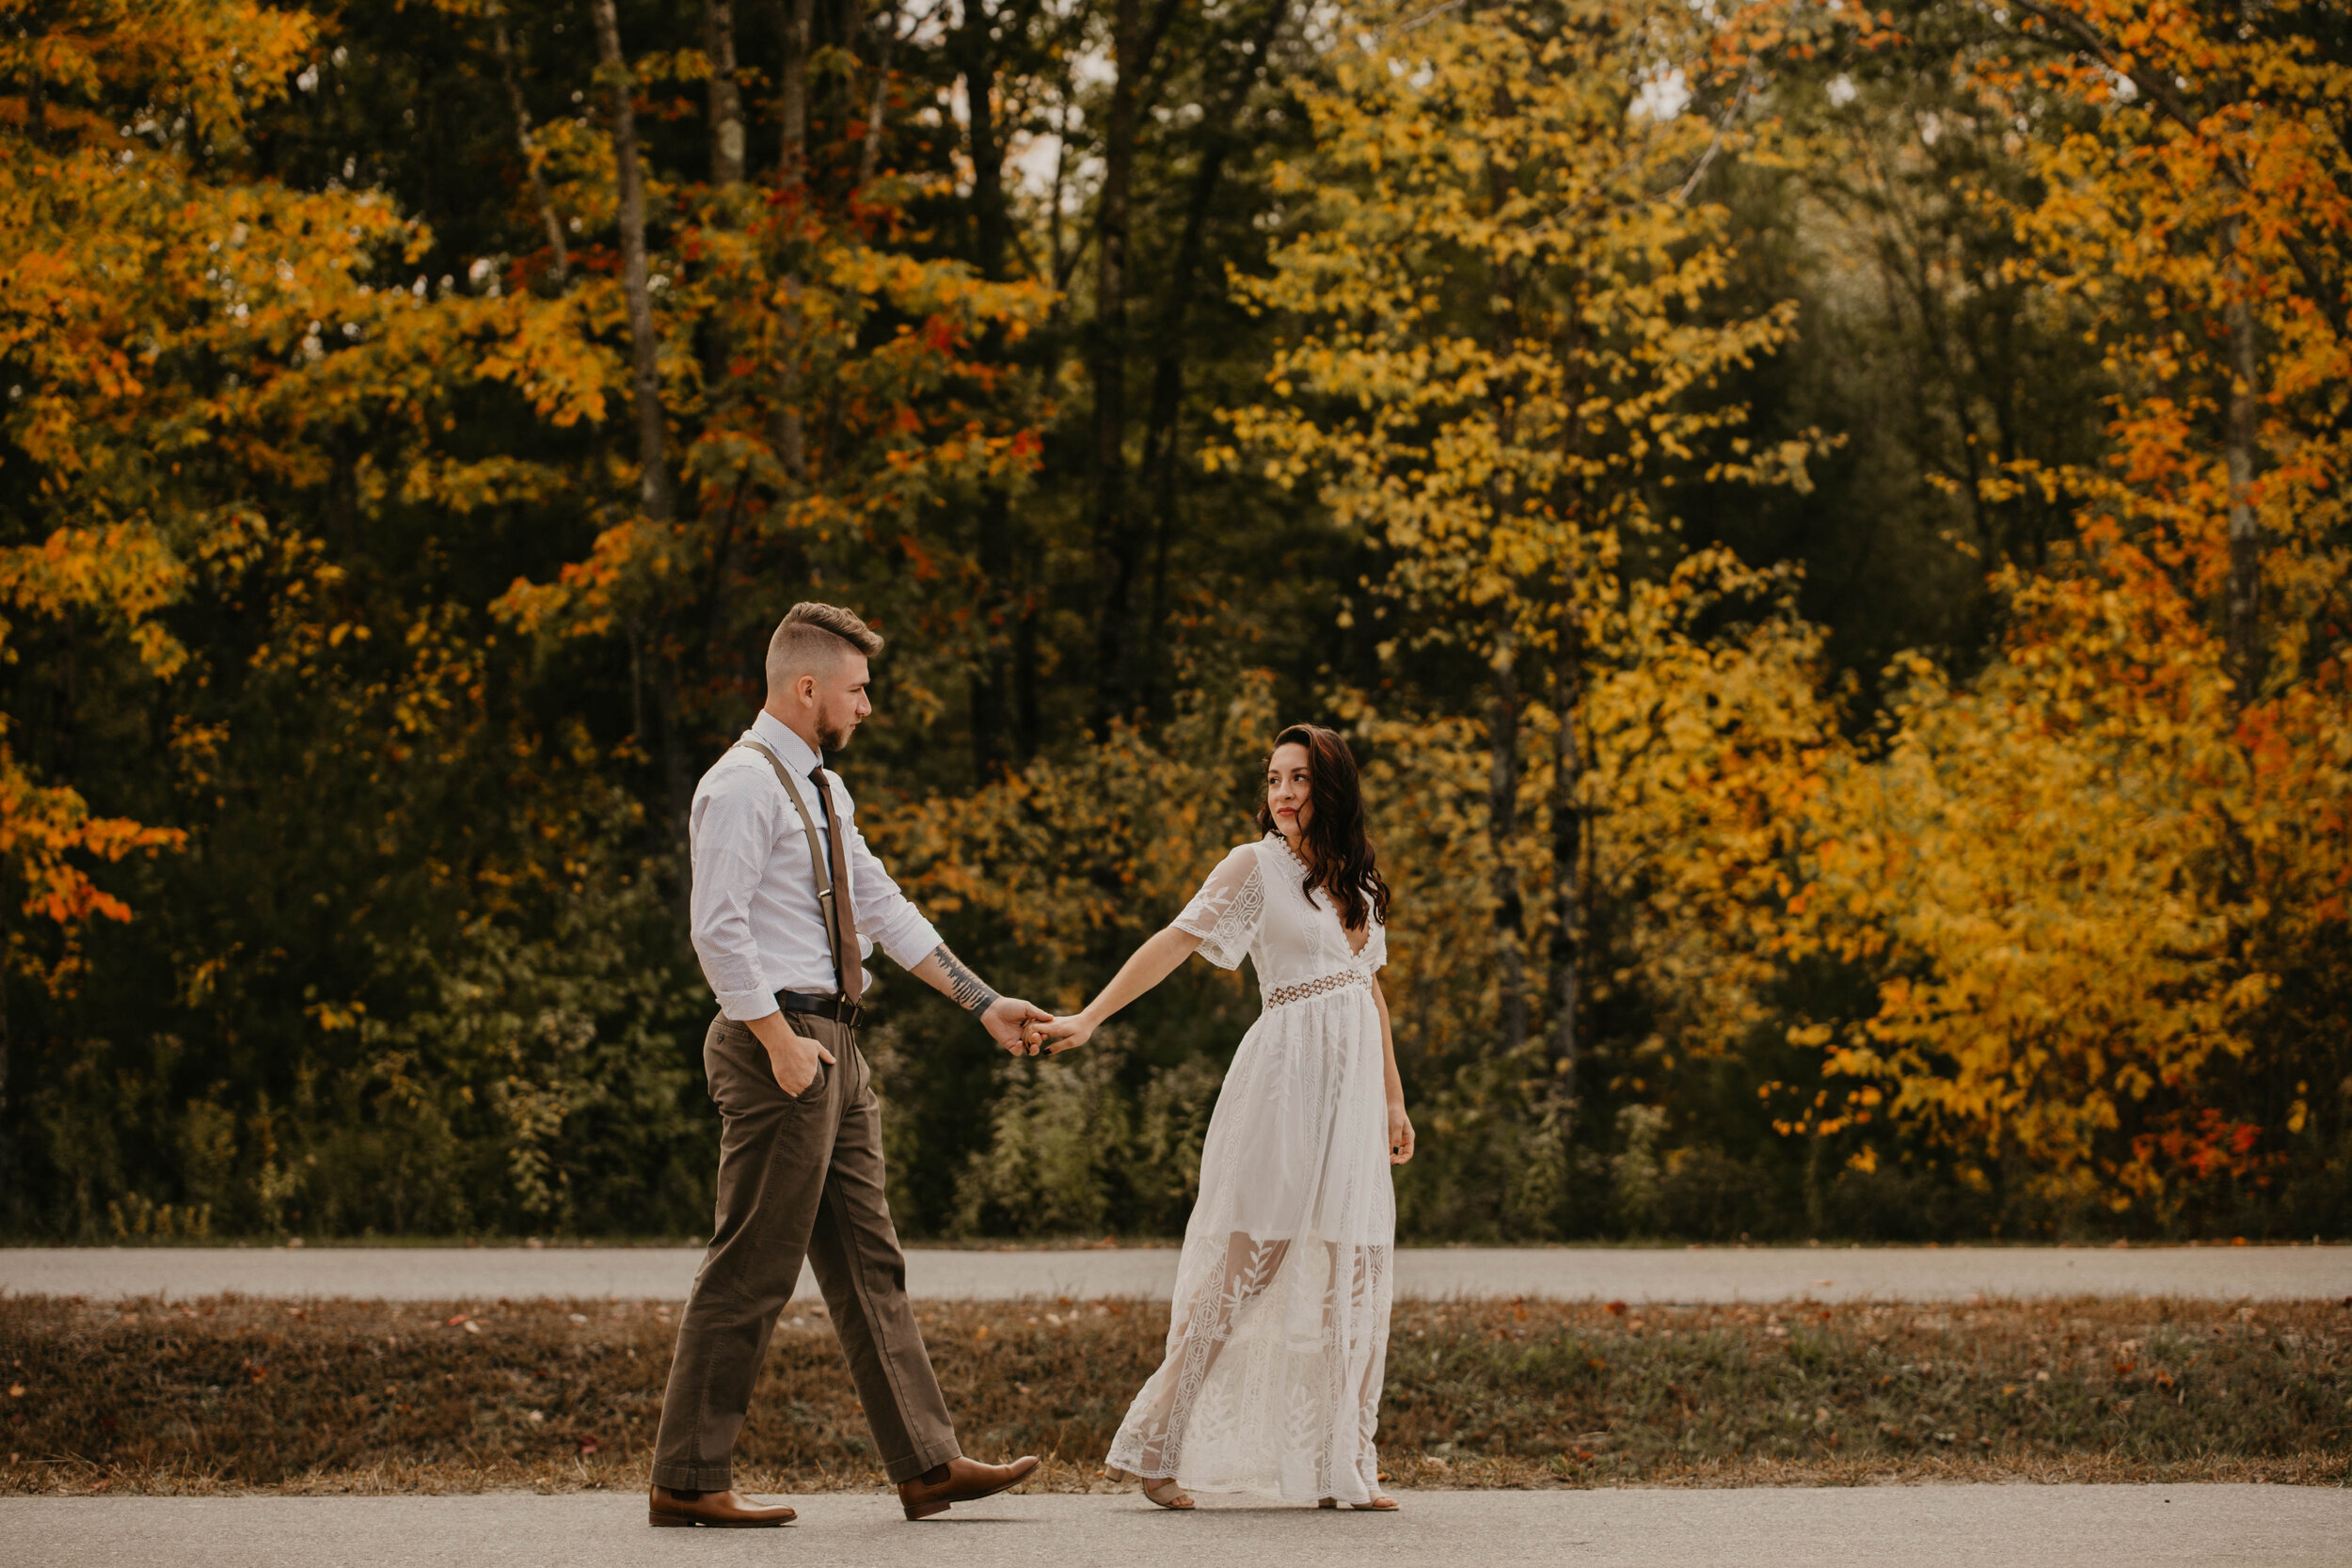 Austin-Haily-Adventure-Elopement-Maine-Ruby-Jean-Photography-16.jpg